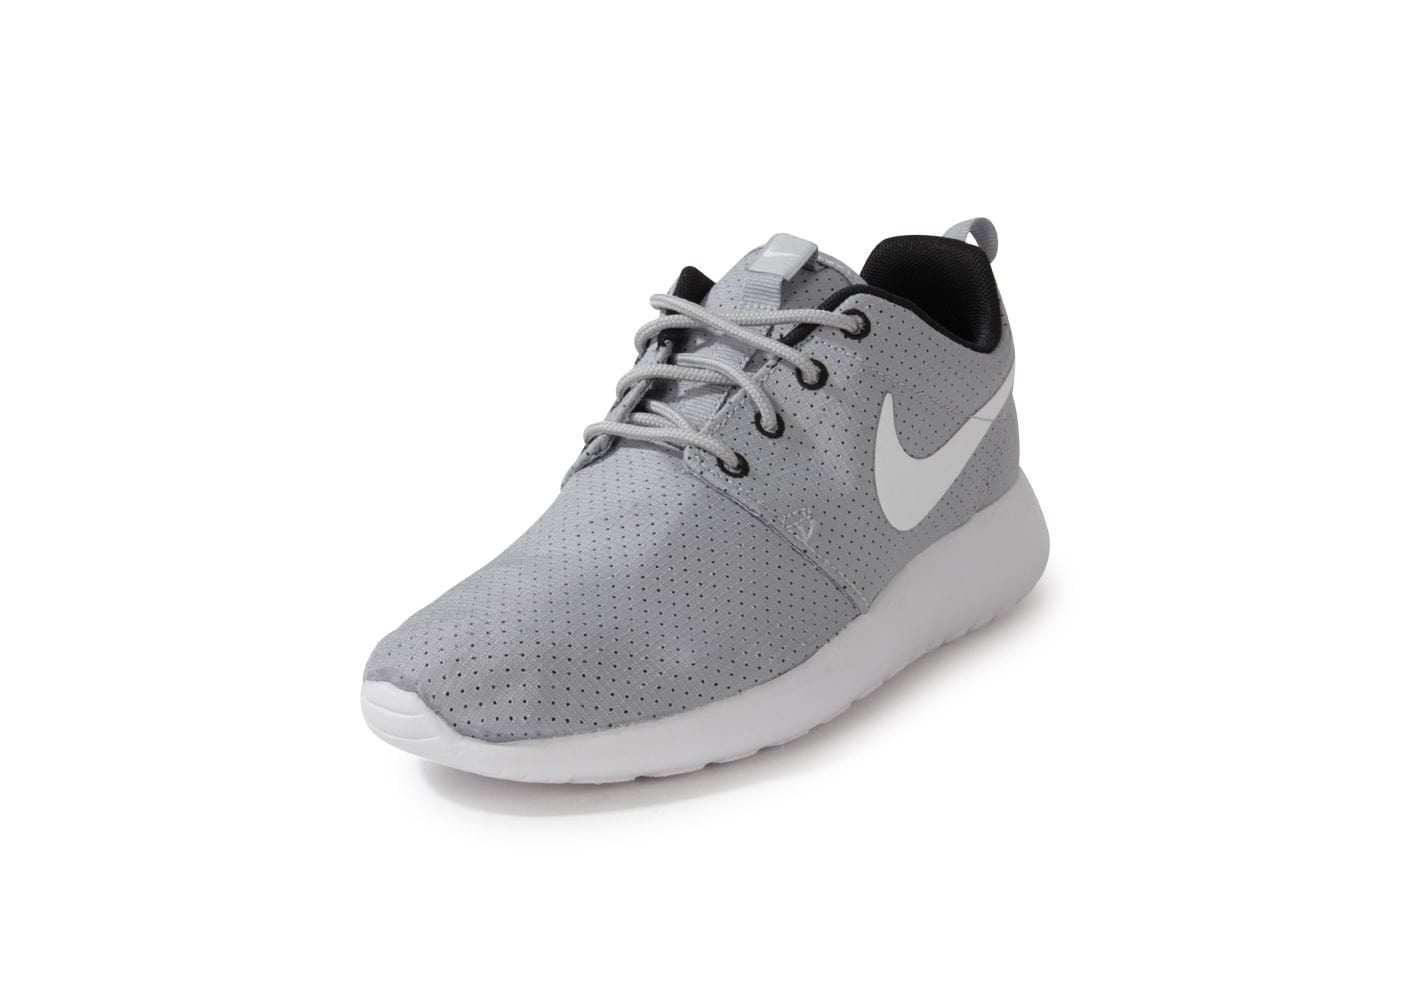 size 40 11f4b 73f64 ... chaussures nike roshe run grise vue avant .